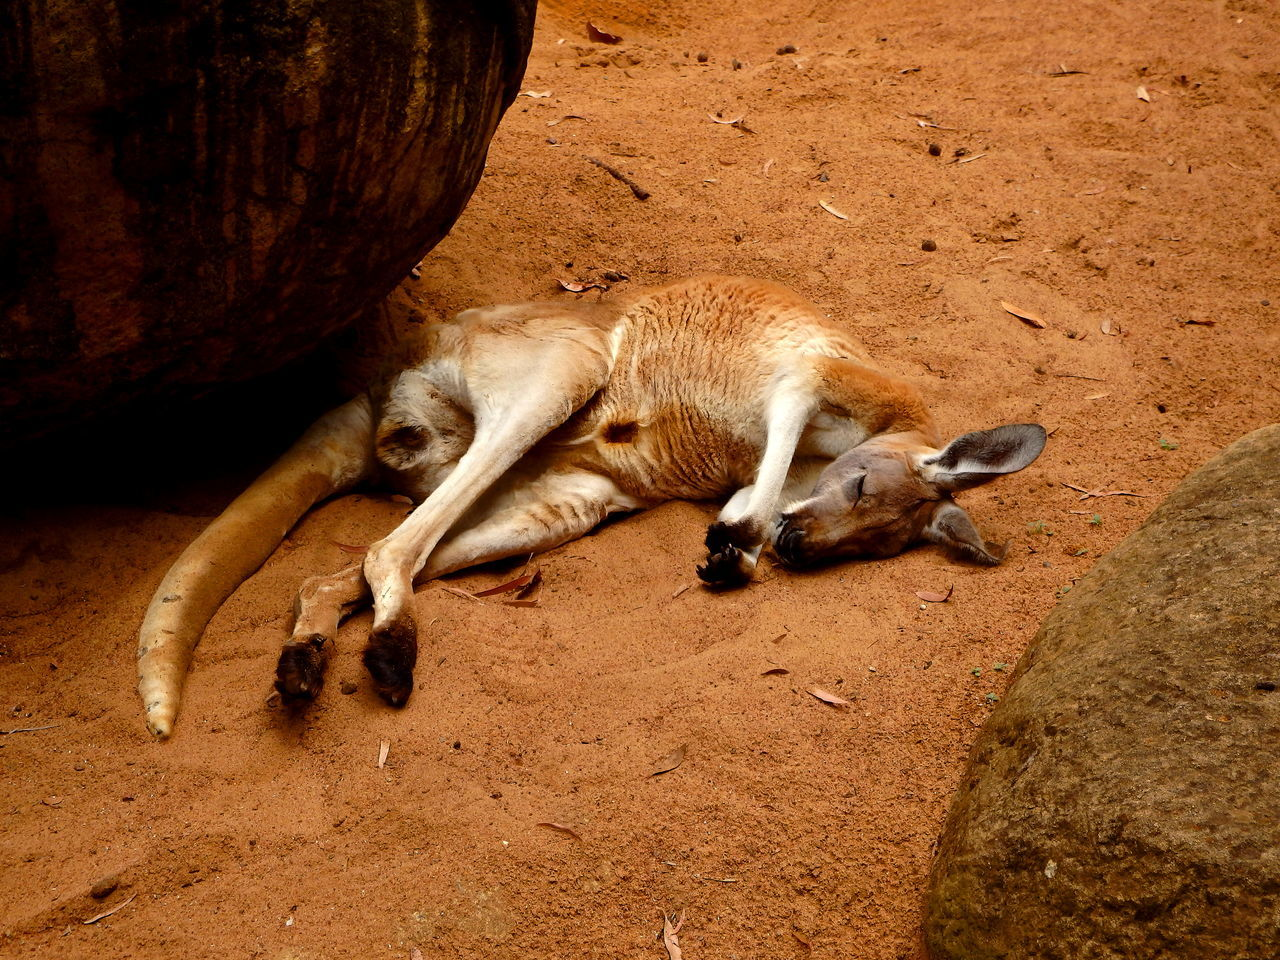 Sleepy kangaroo Animal Animal Themes Animals Animals In The Wild Curiosity Day EyeEm Nature Lover Kangaroo Mammal Nature Nature_collection One Animal Relaxation Relaxing Side View Sleeping Wildlife Zoology